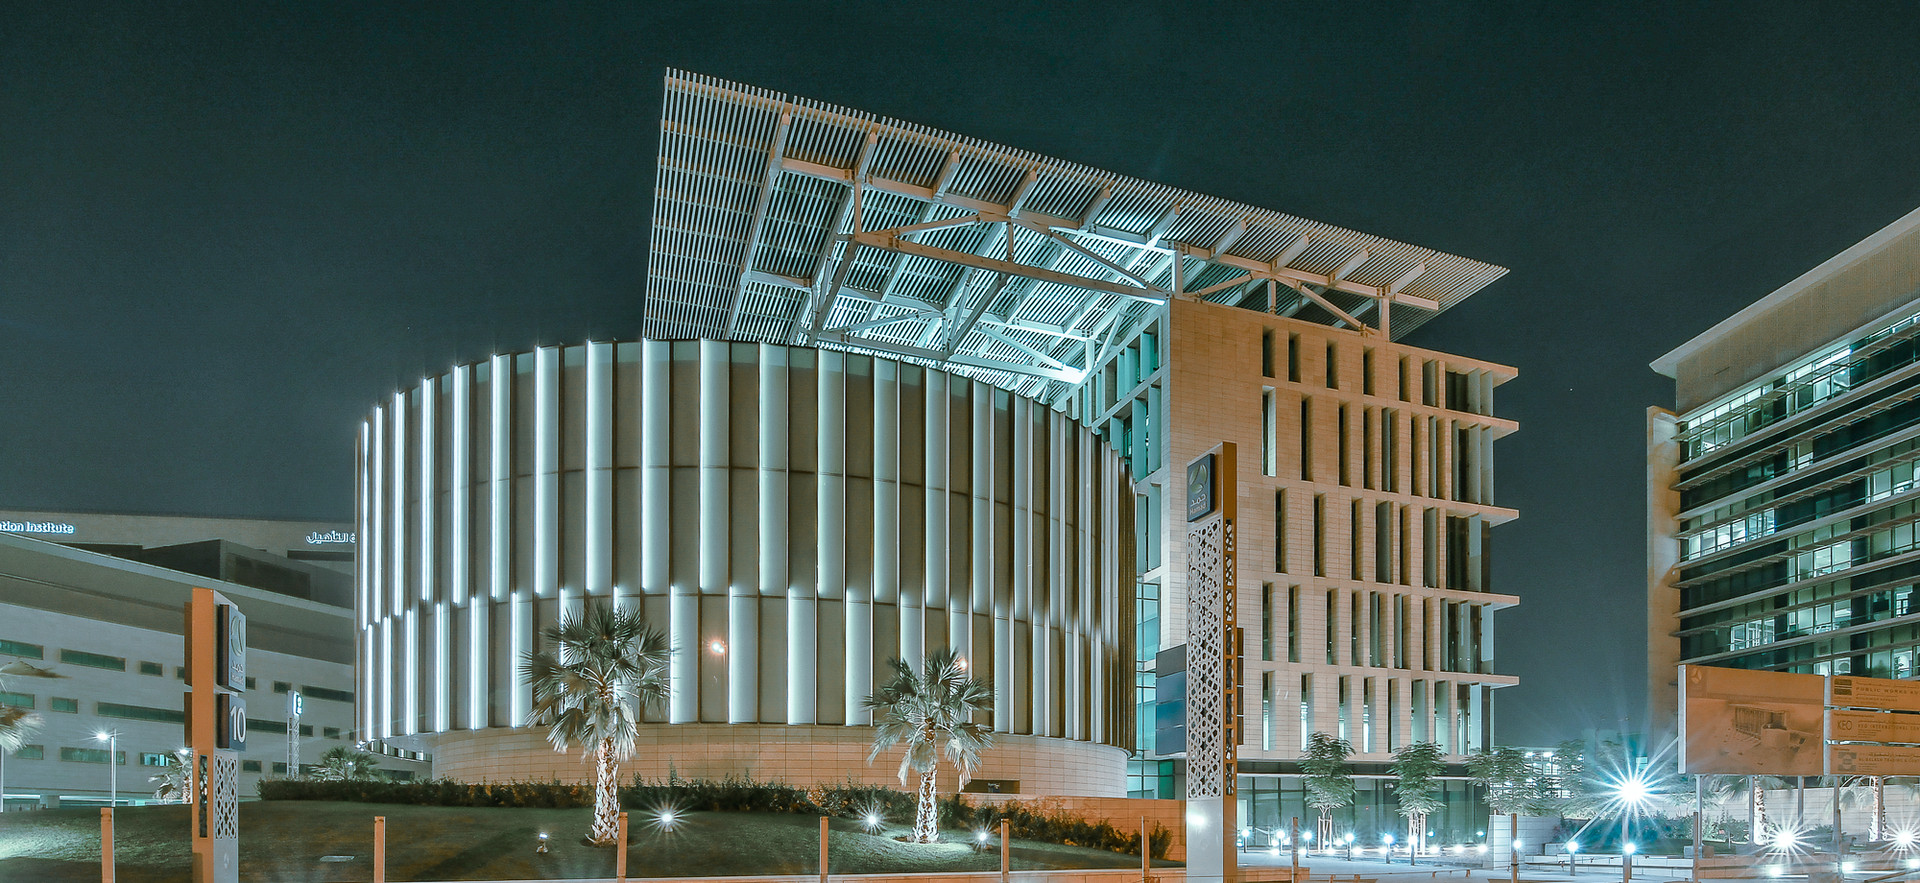 Simulation Center, HMC, Qatar